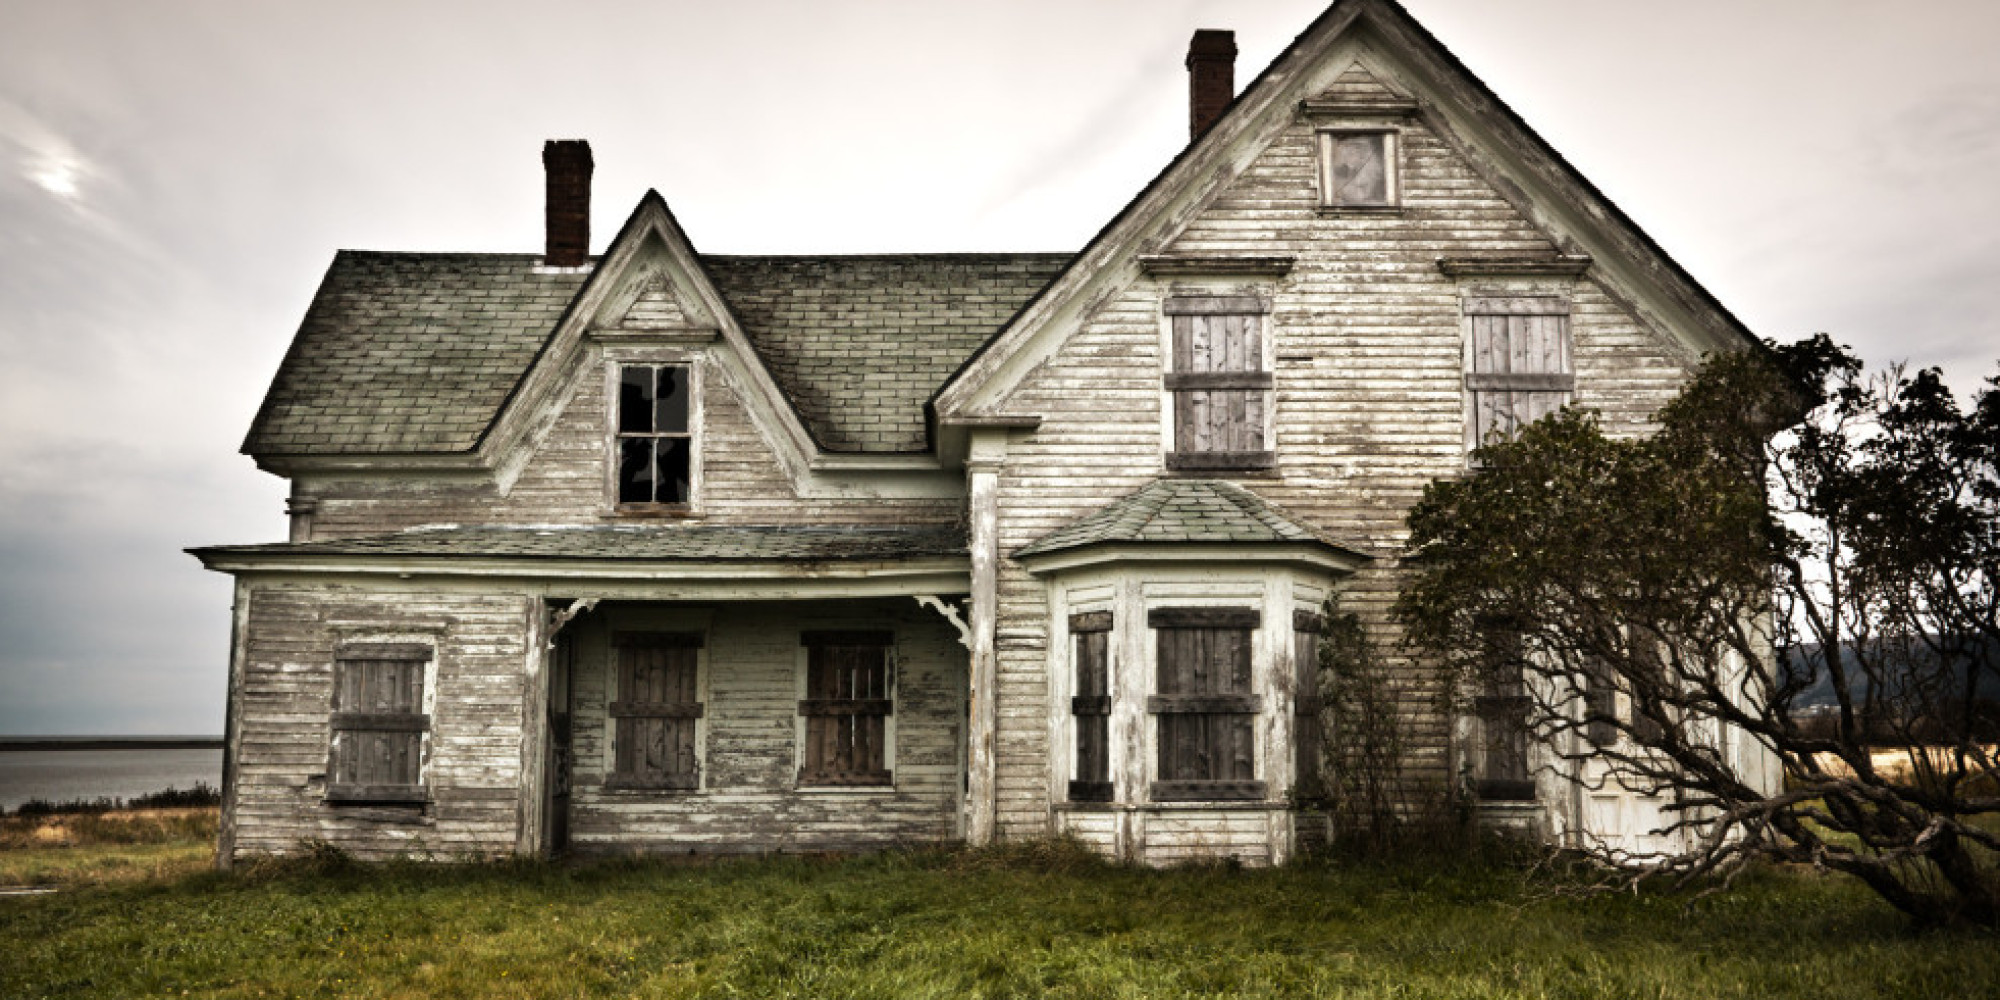 5 Haunted Historical Houses You Can Visit This Halloween